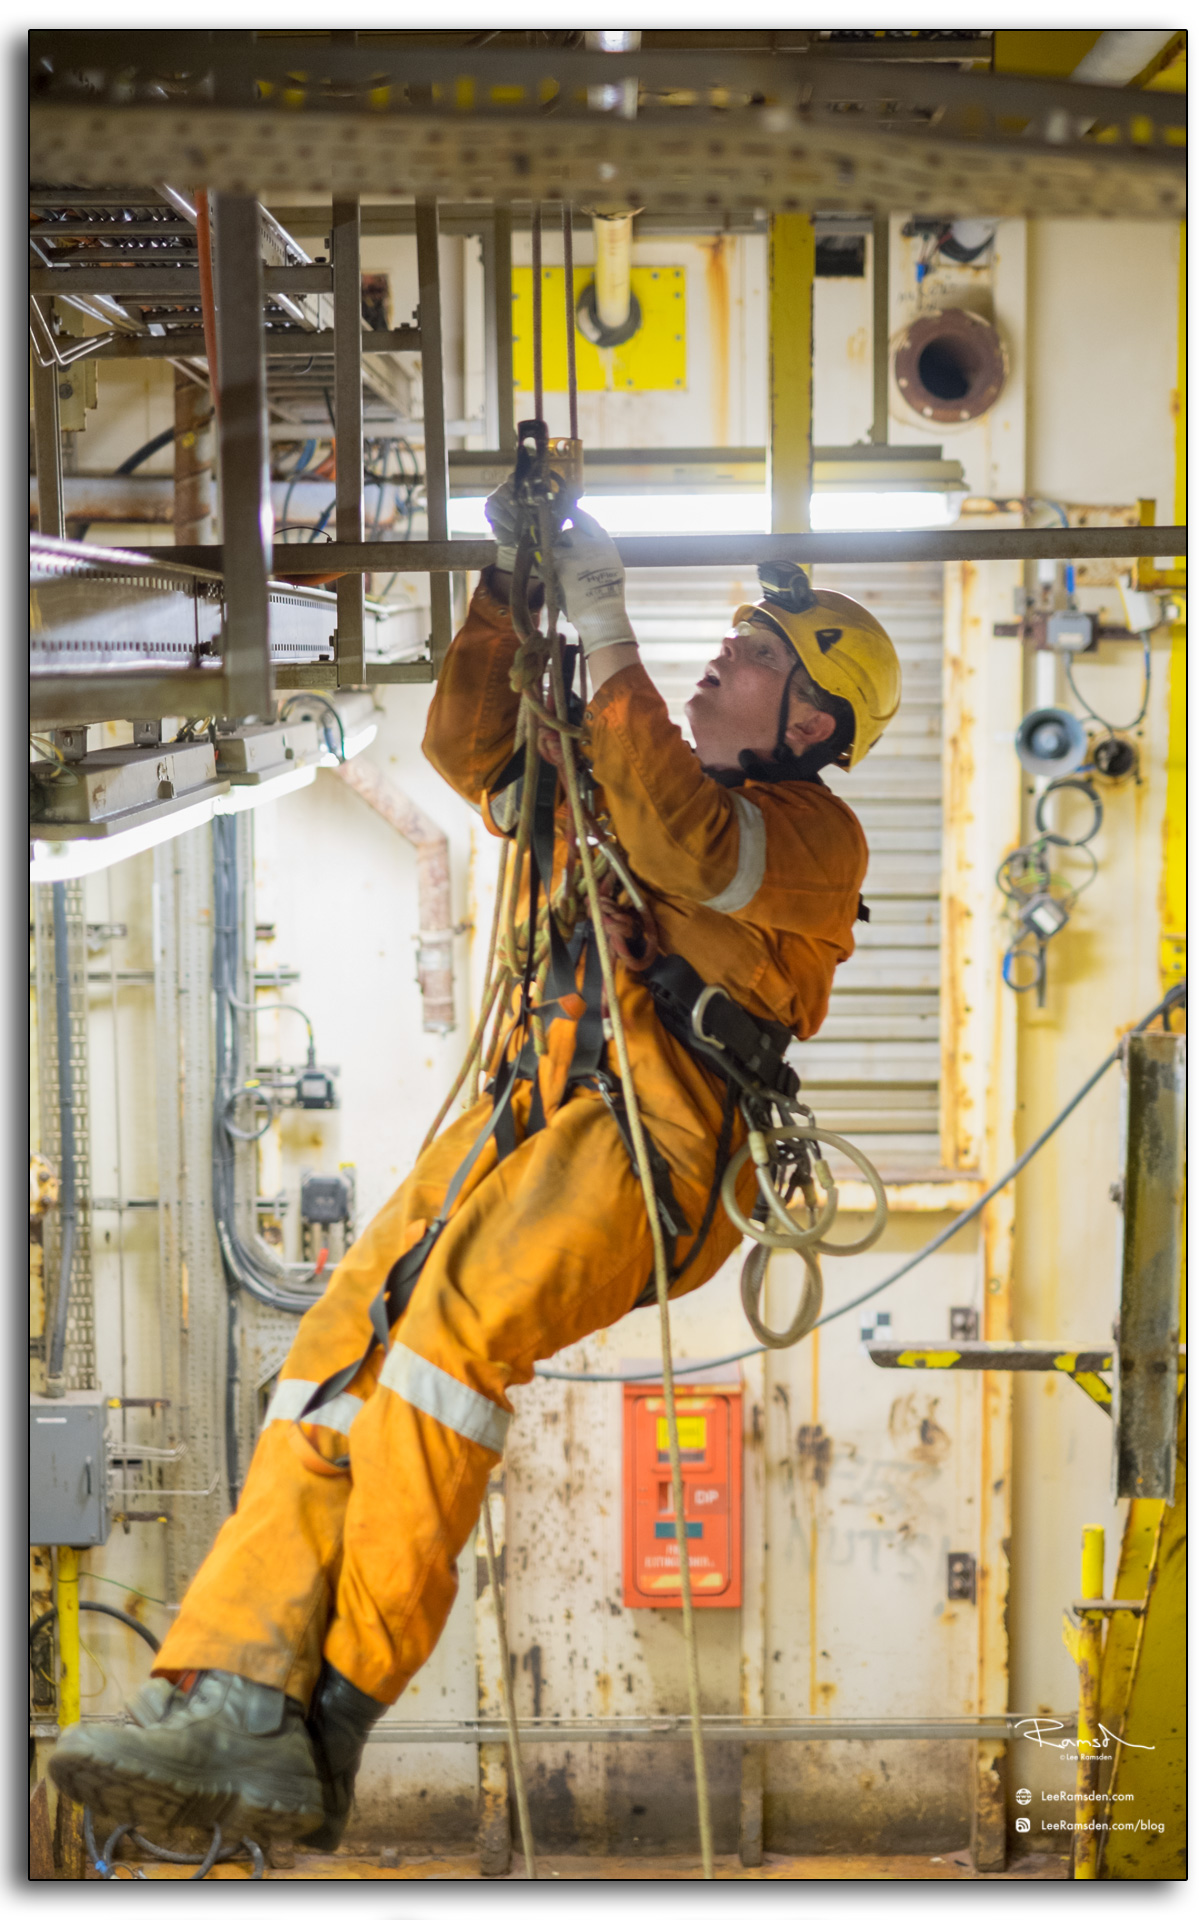 21 SKN electrical abseiler working at height IRATA